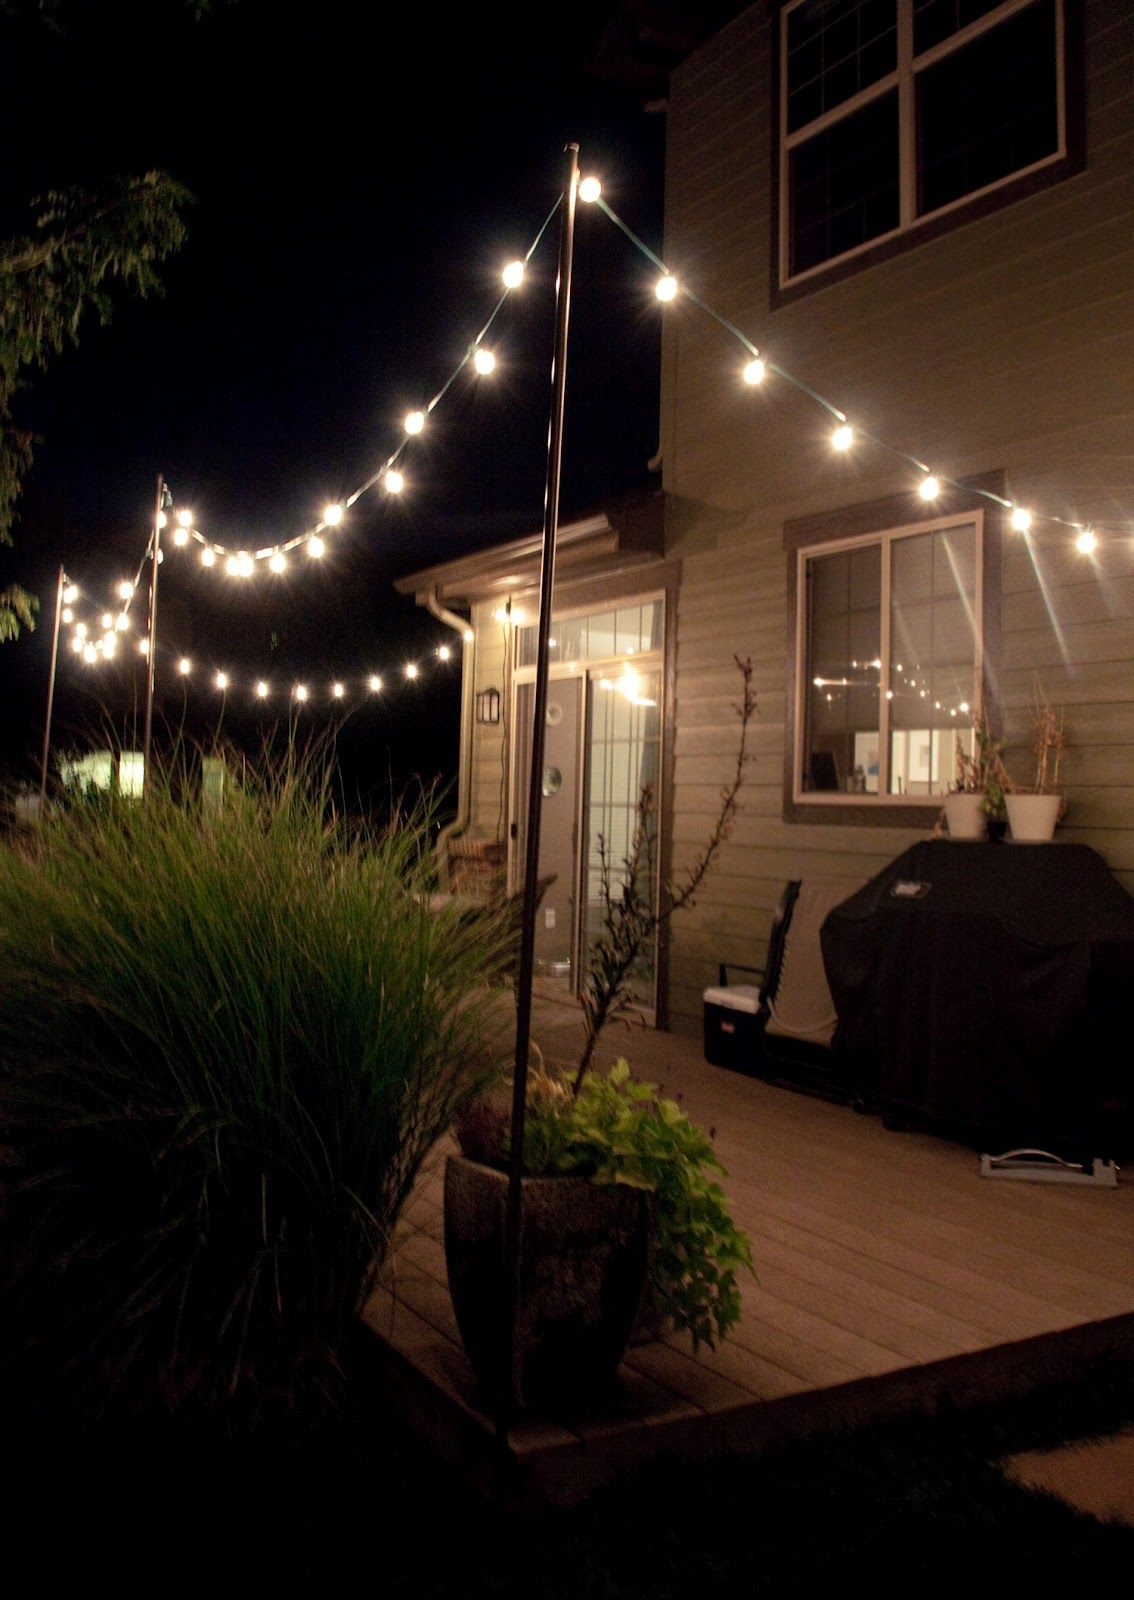 Diy outdoor string lights pinterest outdoor string lighting this past labor day we made posts to hang string lights to hang around our deck im so thrilled with how they turned out so aloadofball Image collections